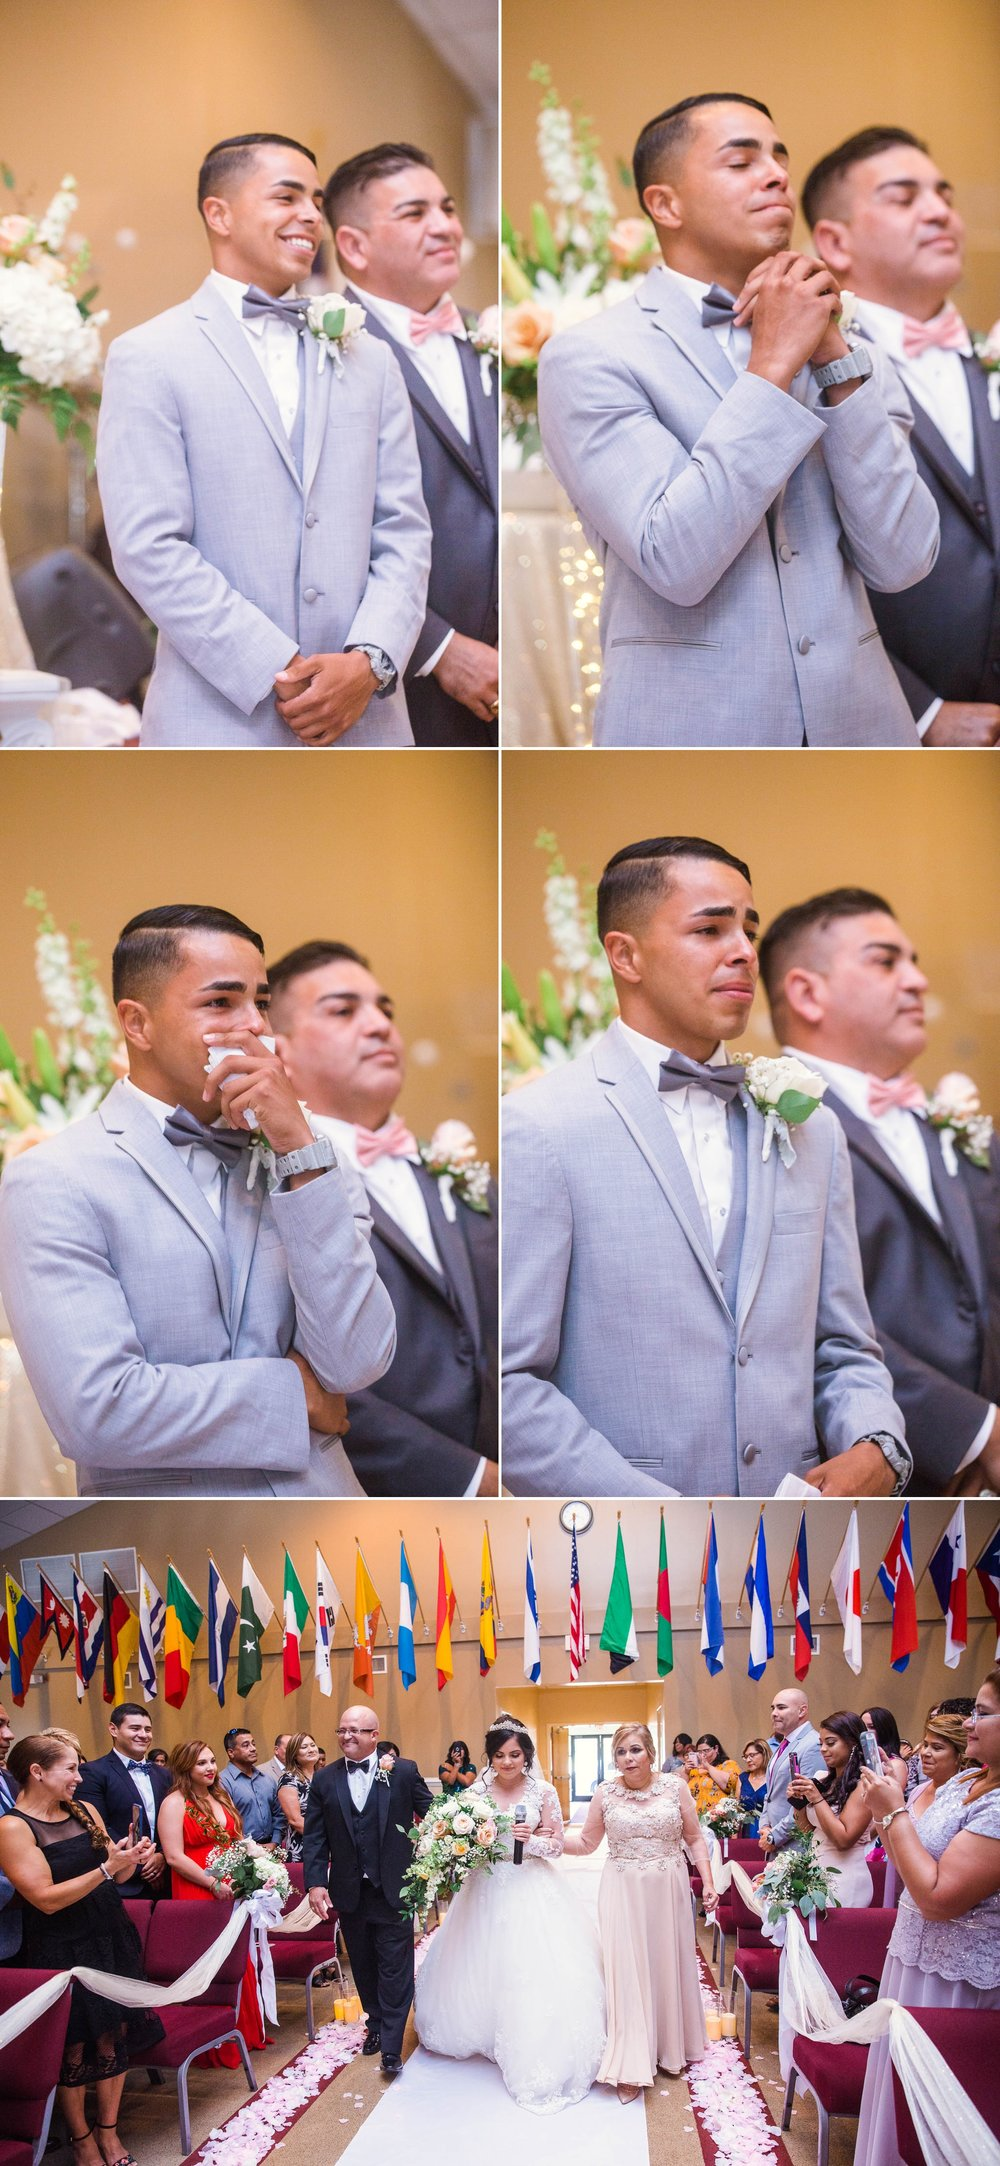 First Look of the groom seeing his bride - Ceremony - Yansi + Eddie - Wedding at Capilla Cristo Redentor - Fayetteville North Carolina Photographer